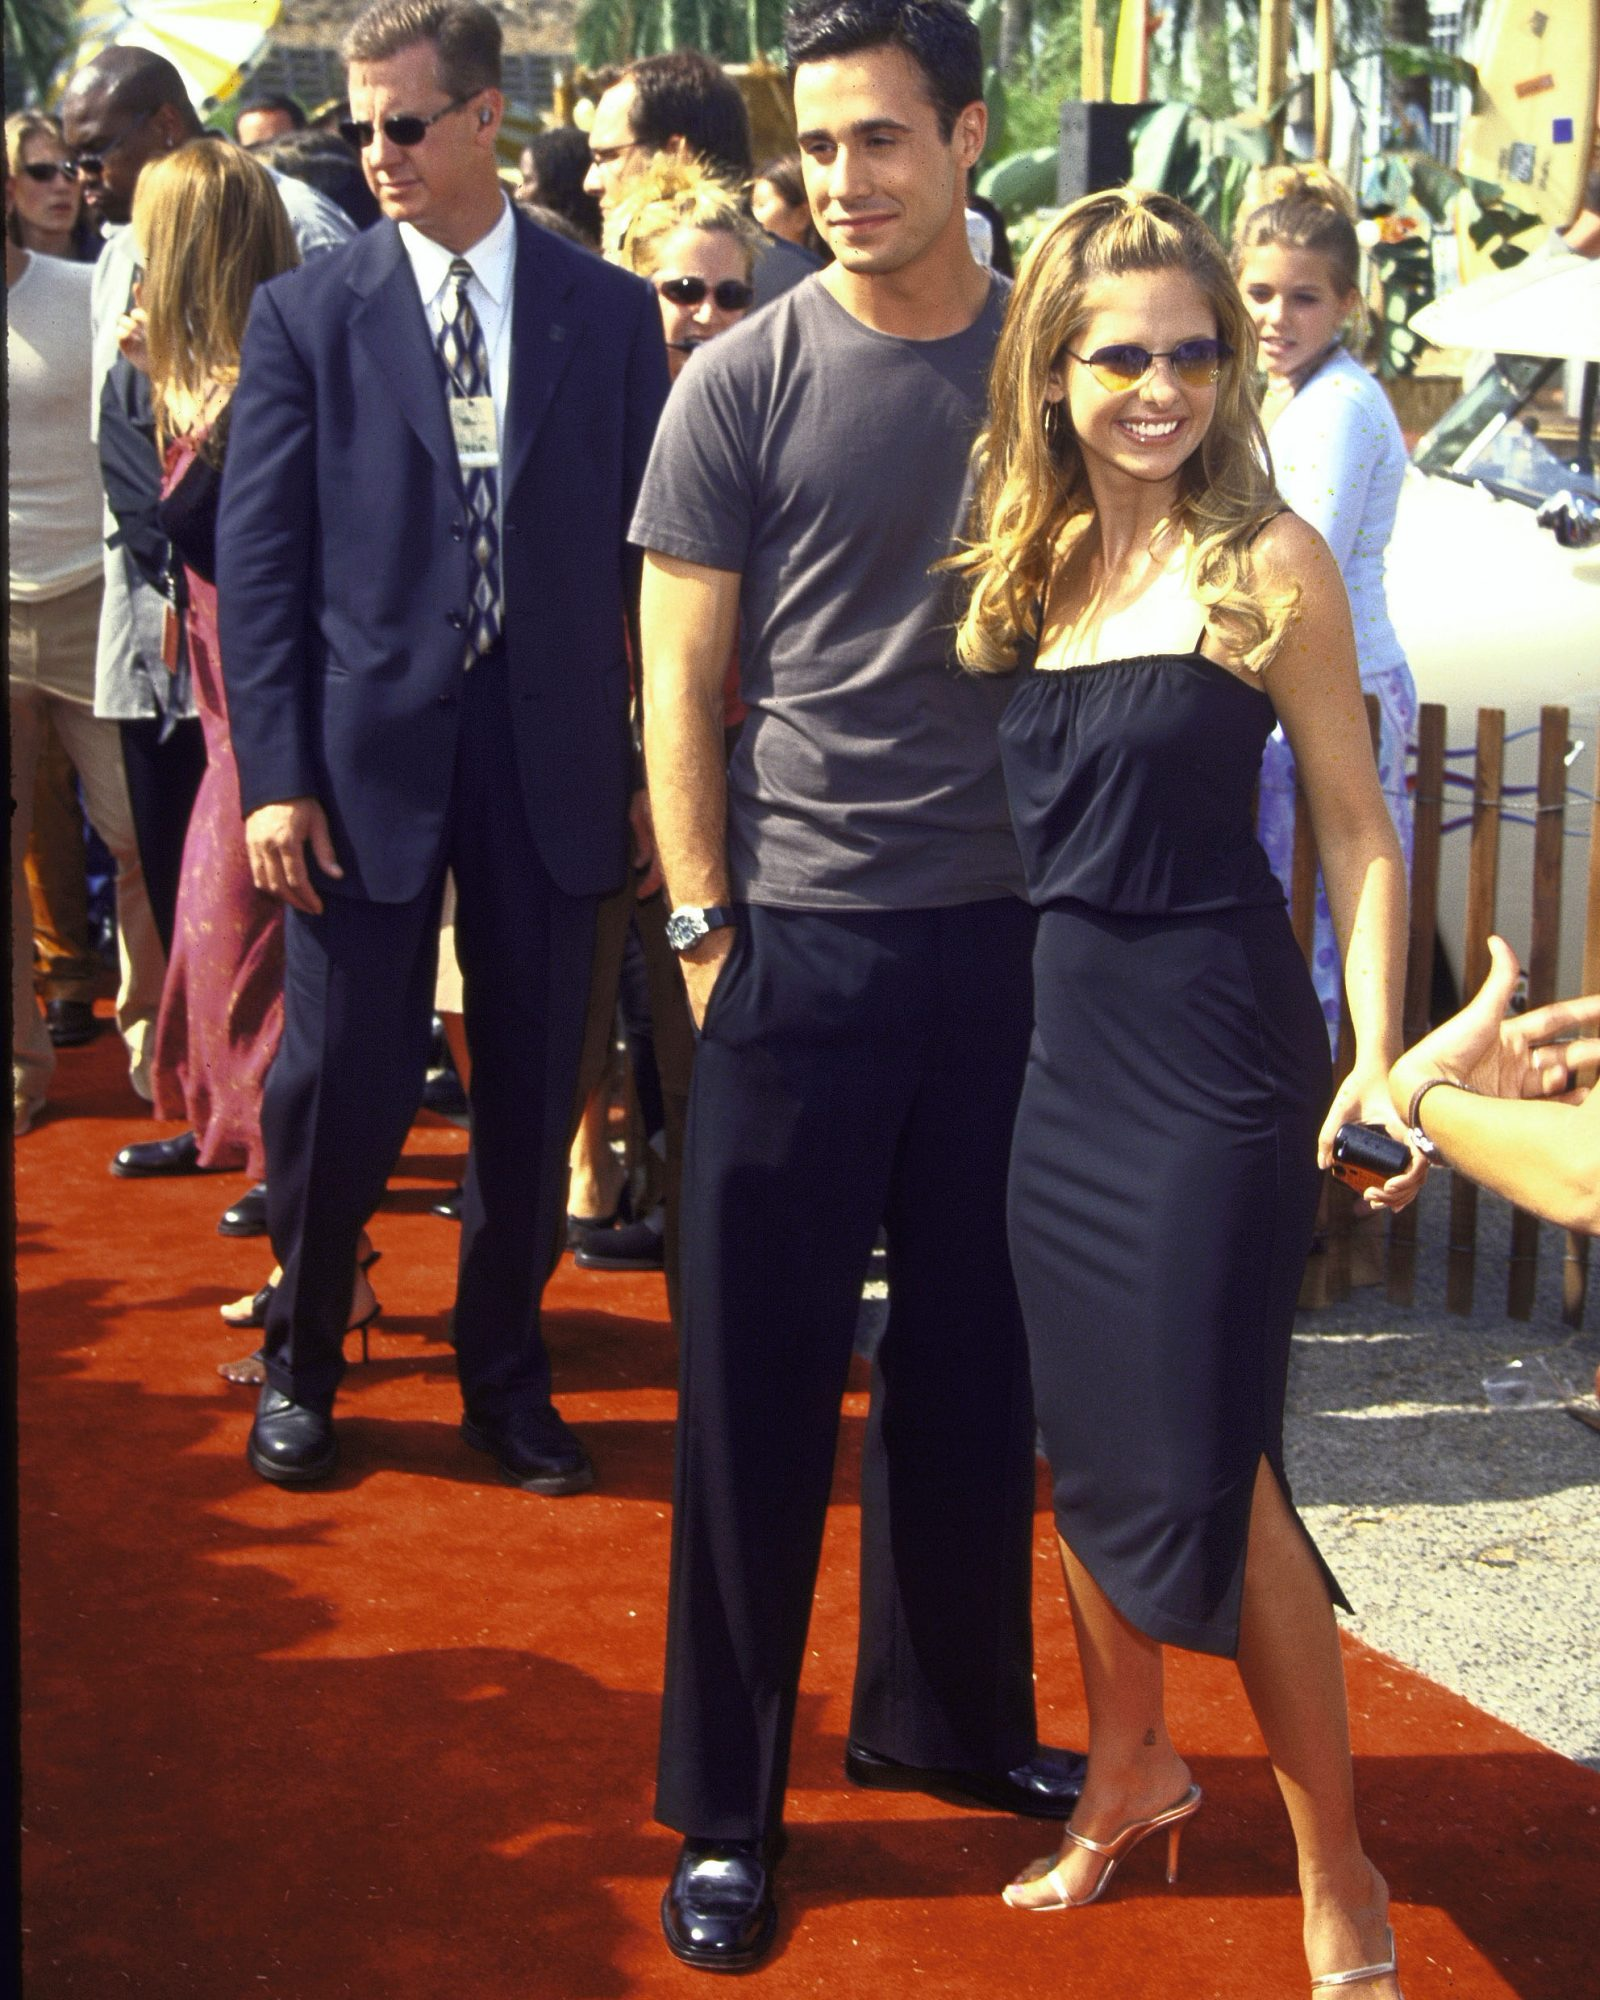 throwbacks-sarah-michelle-gellar-freddie-jr-prinze-0616.jpg